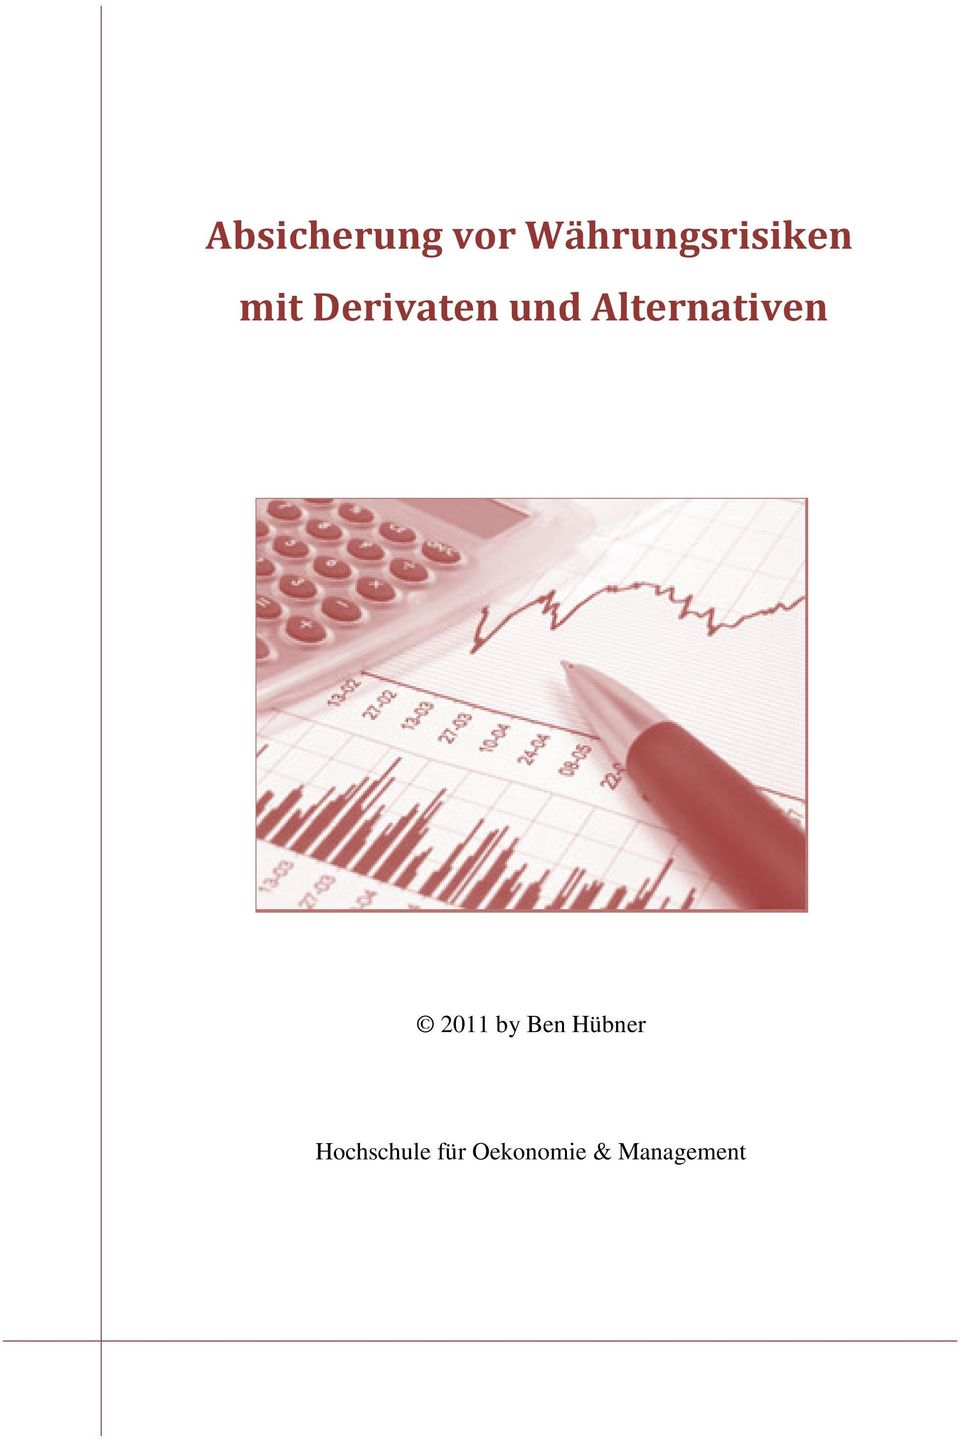 Derivaten und Alternativen